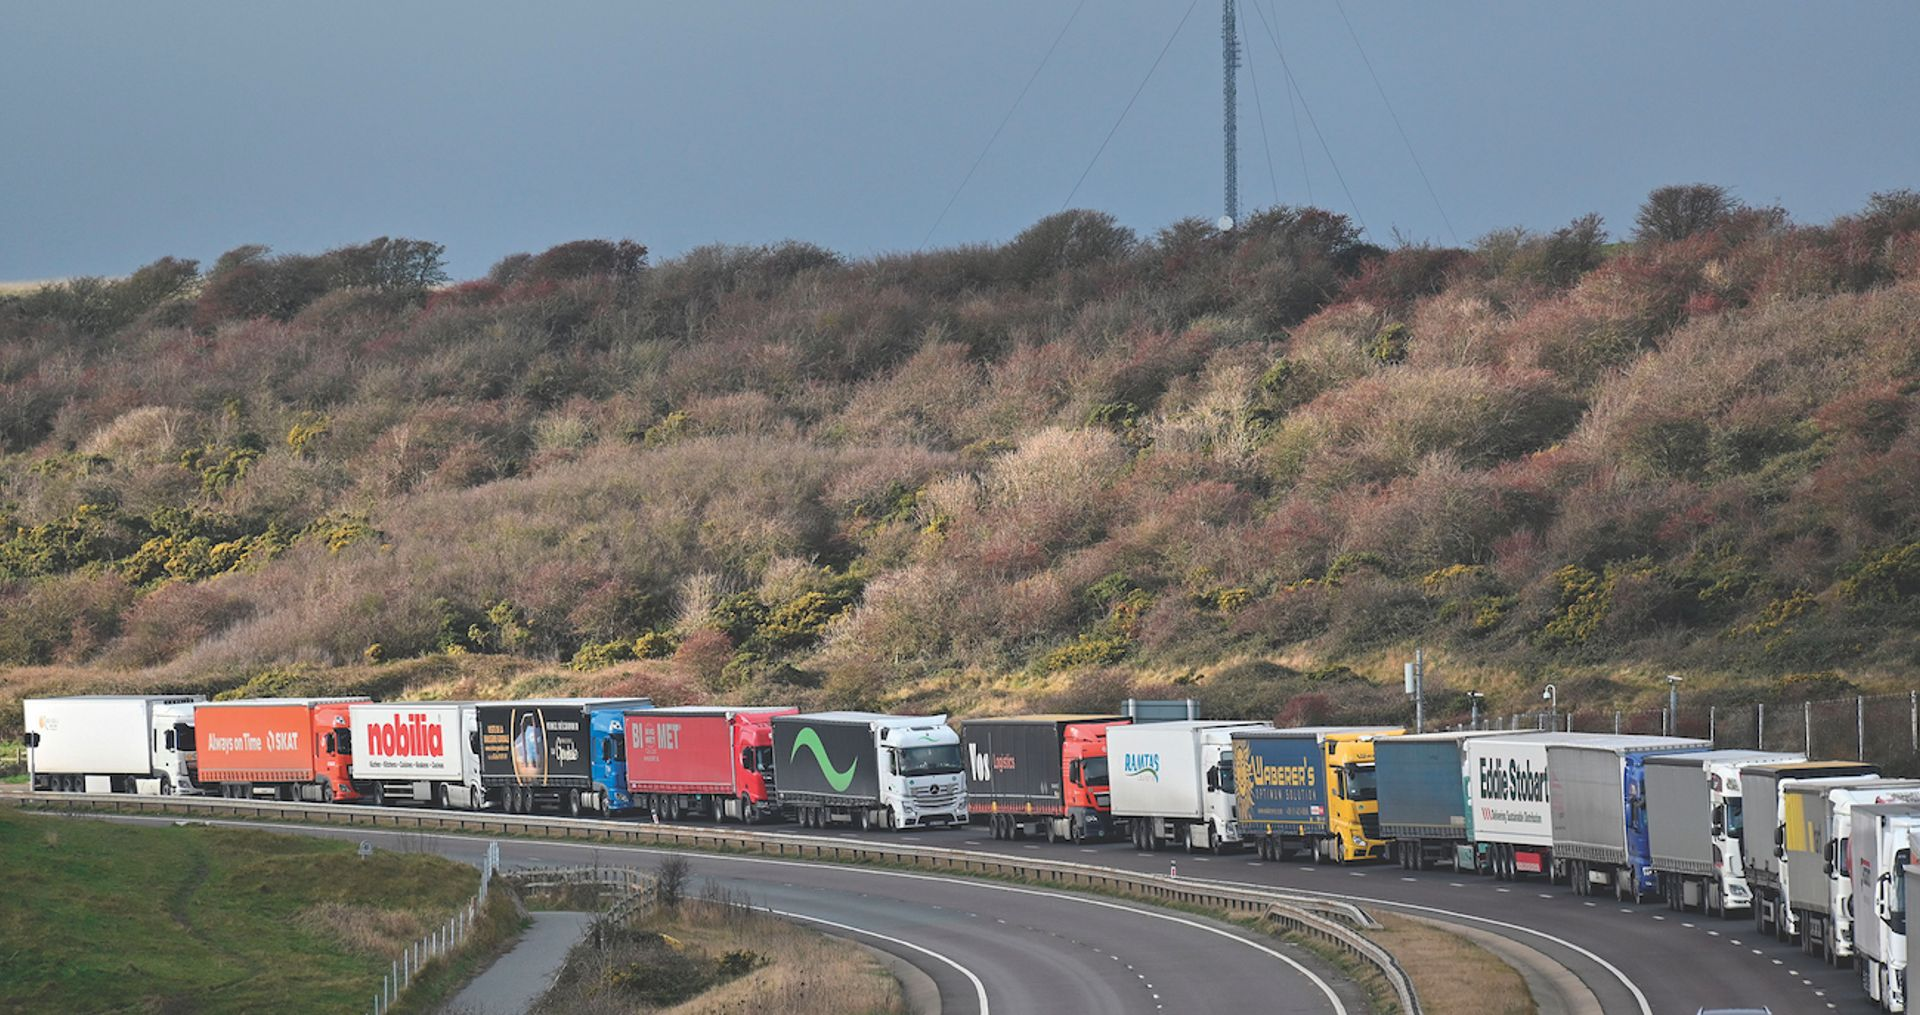 Regular—and very long—lorry queues at the port of Dover are inevitable in the next few months, as drivers will have to deal with new paperwork when transporting works to Europe Justin Tallis/AFP via Getty Images